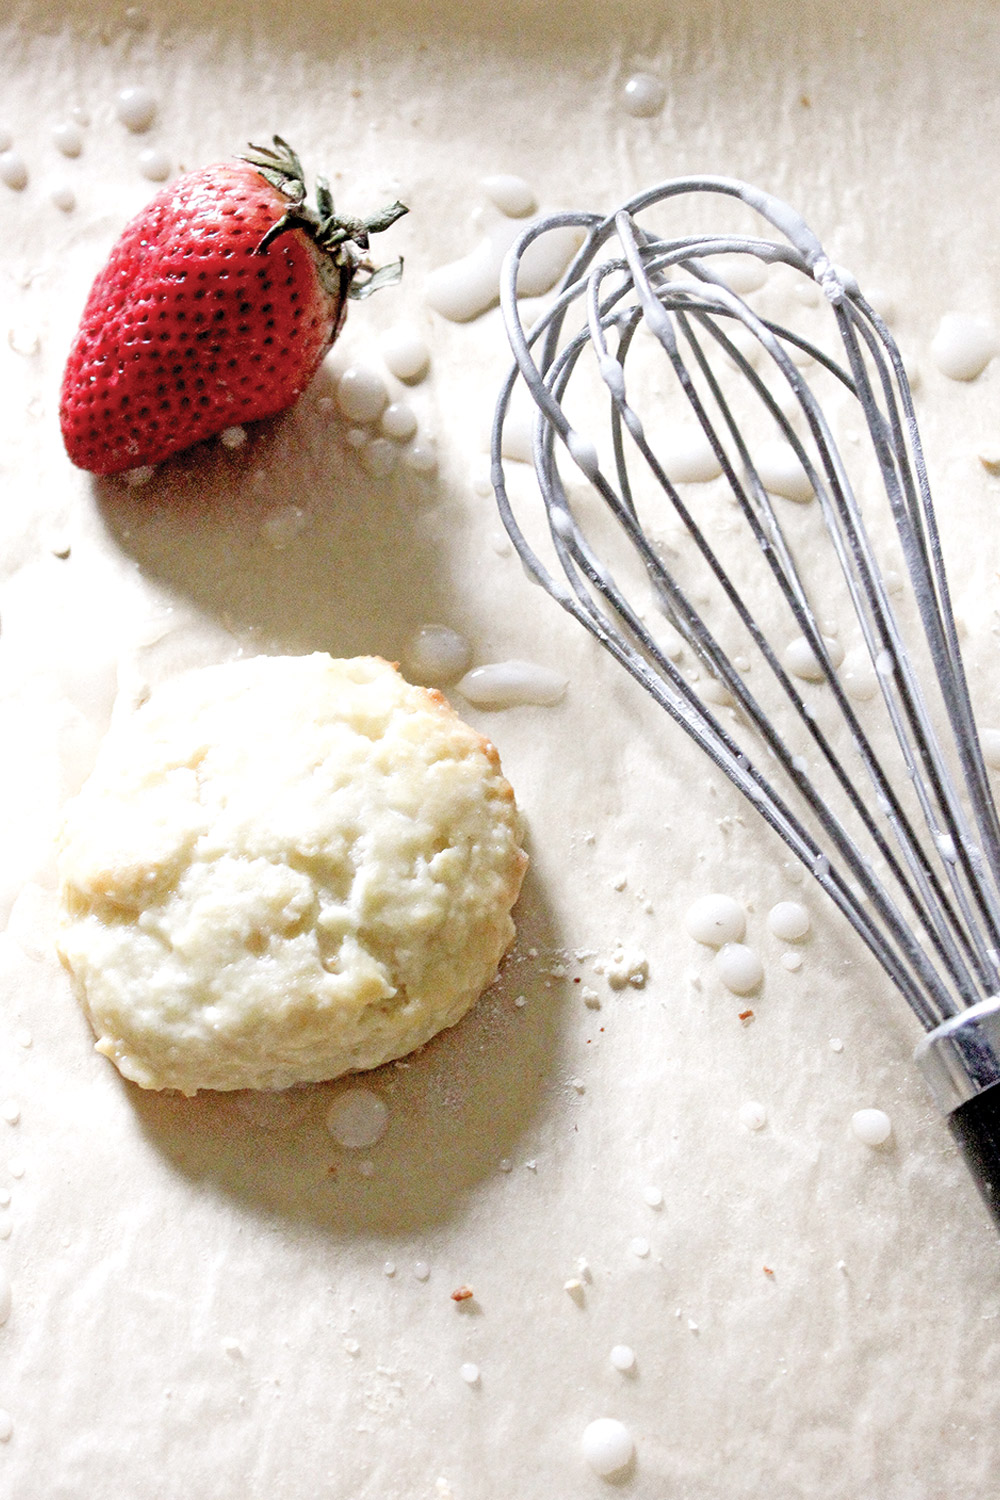 Kitchen setting-biscuit, strawberry, whisk on a floured surface